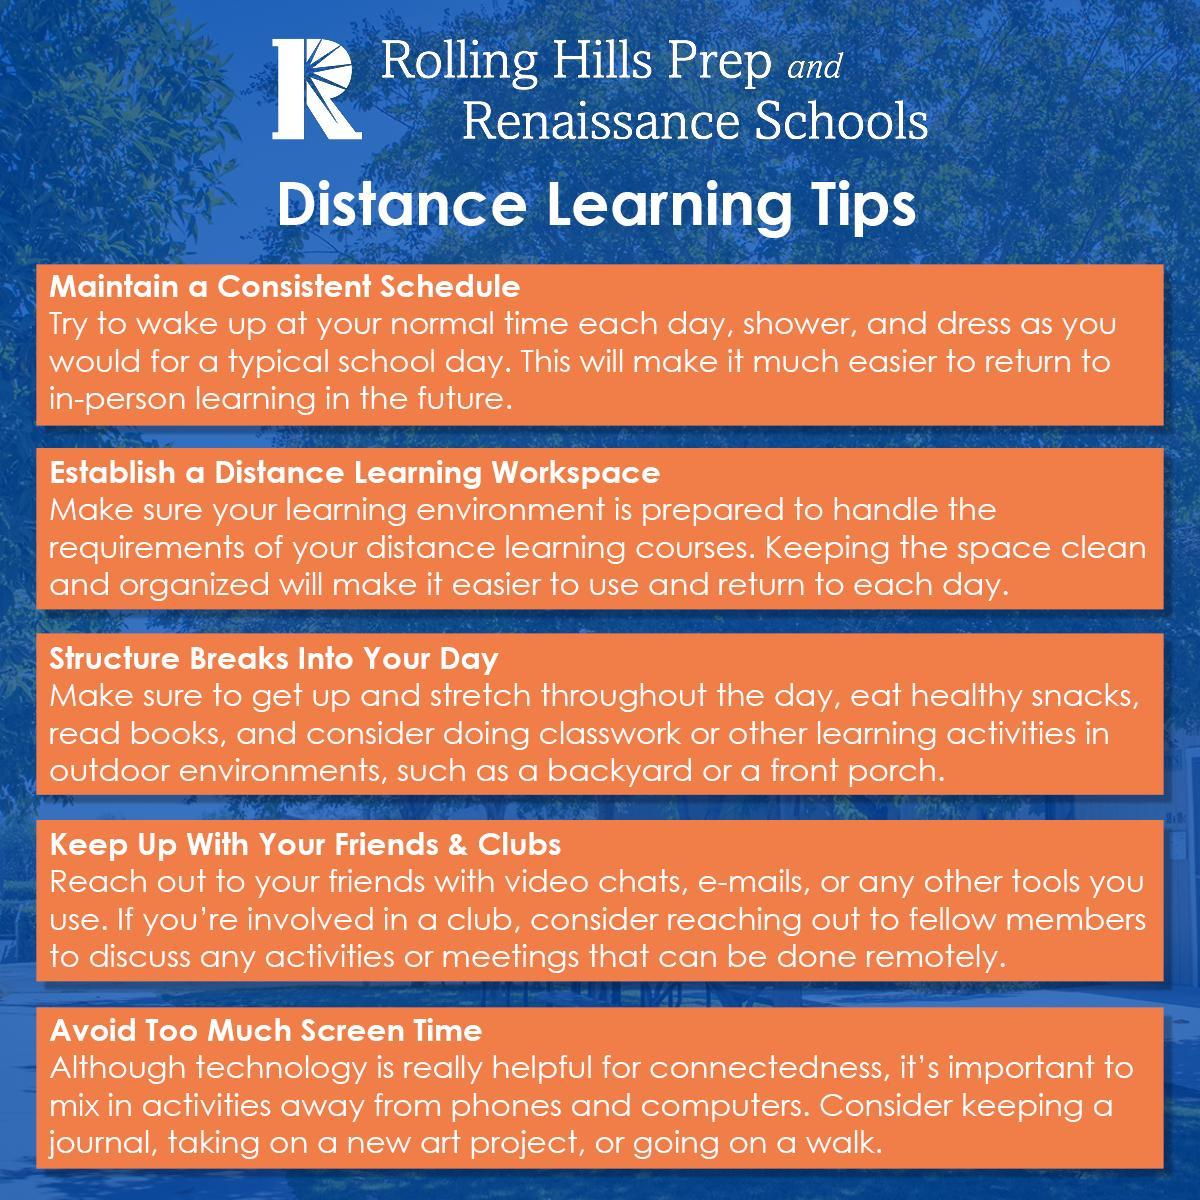 Distance Learning Tips - Maintain a Consistent Schedule: Try to wake up at your normal time each day, shower, and dress as you would for a typical school day. This will make it much easier to return to  in-person learning in the future.  Establish a Distance Learning Workspace: Make sure your learning environment is prepared to handle the requirements of your distance learning courses. Keeping the space clean and organized will make it easier to use and return to each day.  Structure Breaks Into Your Day: Make sure to get up and stretch throughout the day, eat healthy snacks, read books, and consider doing classwork or other learning activities in outdoor environments, such as a backyard or a front porch.   Keep Up With Your Friends & Clubs: Reach out to your friends with video chats, e-mails, or any other tools you use. If you're involved in a club, consider reaching out to fellow members to discuss any activities or meetings that can be done remotely.  Avoid Too Much Screen Time: Although technology is really helpful for connectedness, it's important to mix in activities away from phones and computers. Consider keeping a journal, taking on a new art project, or going on a walk.